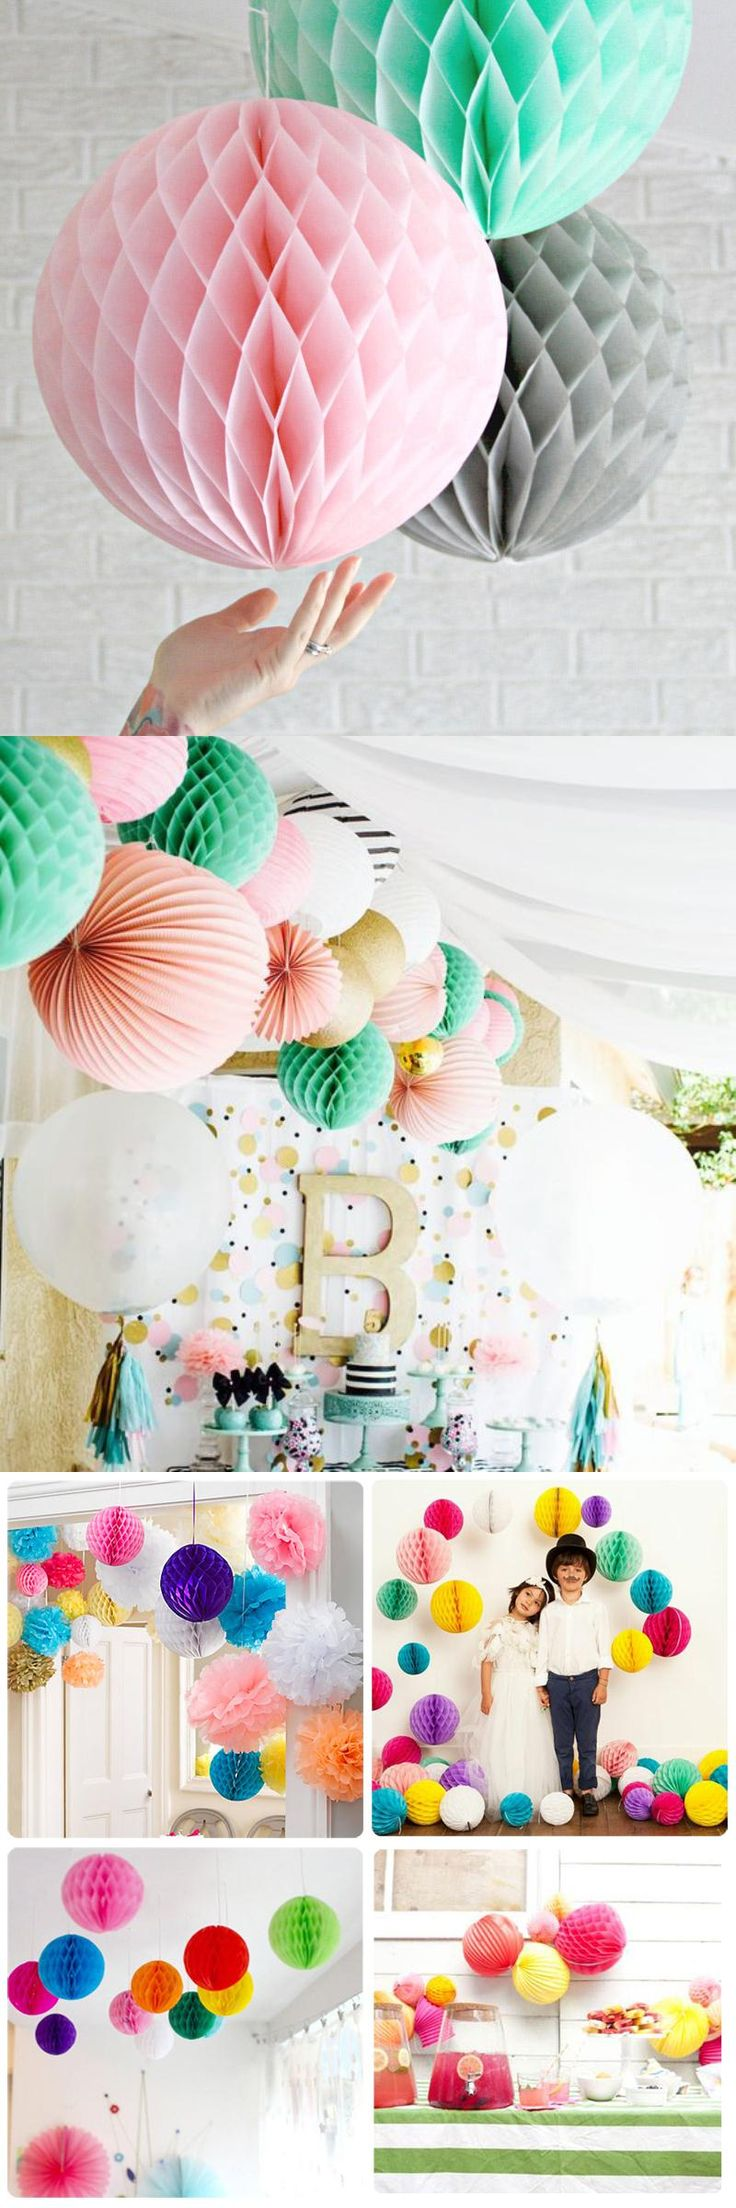 2 Pcs Mix Colors Tissue Paper Lantern Honeycomb Ball Flower For Home  Wedding Birthday Party Baby